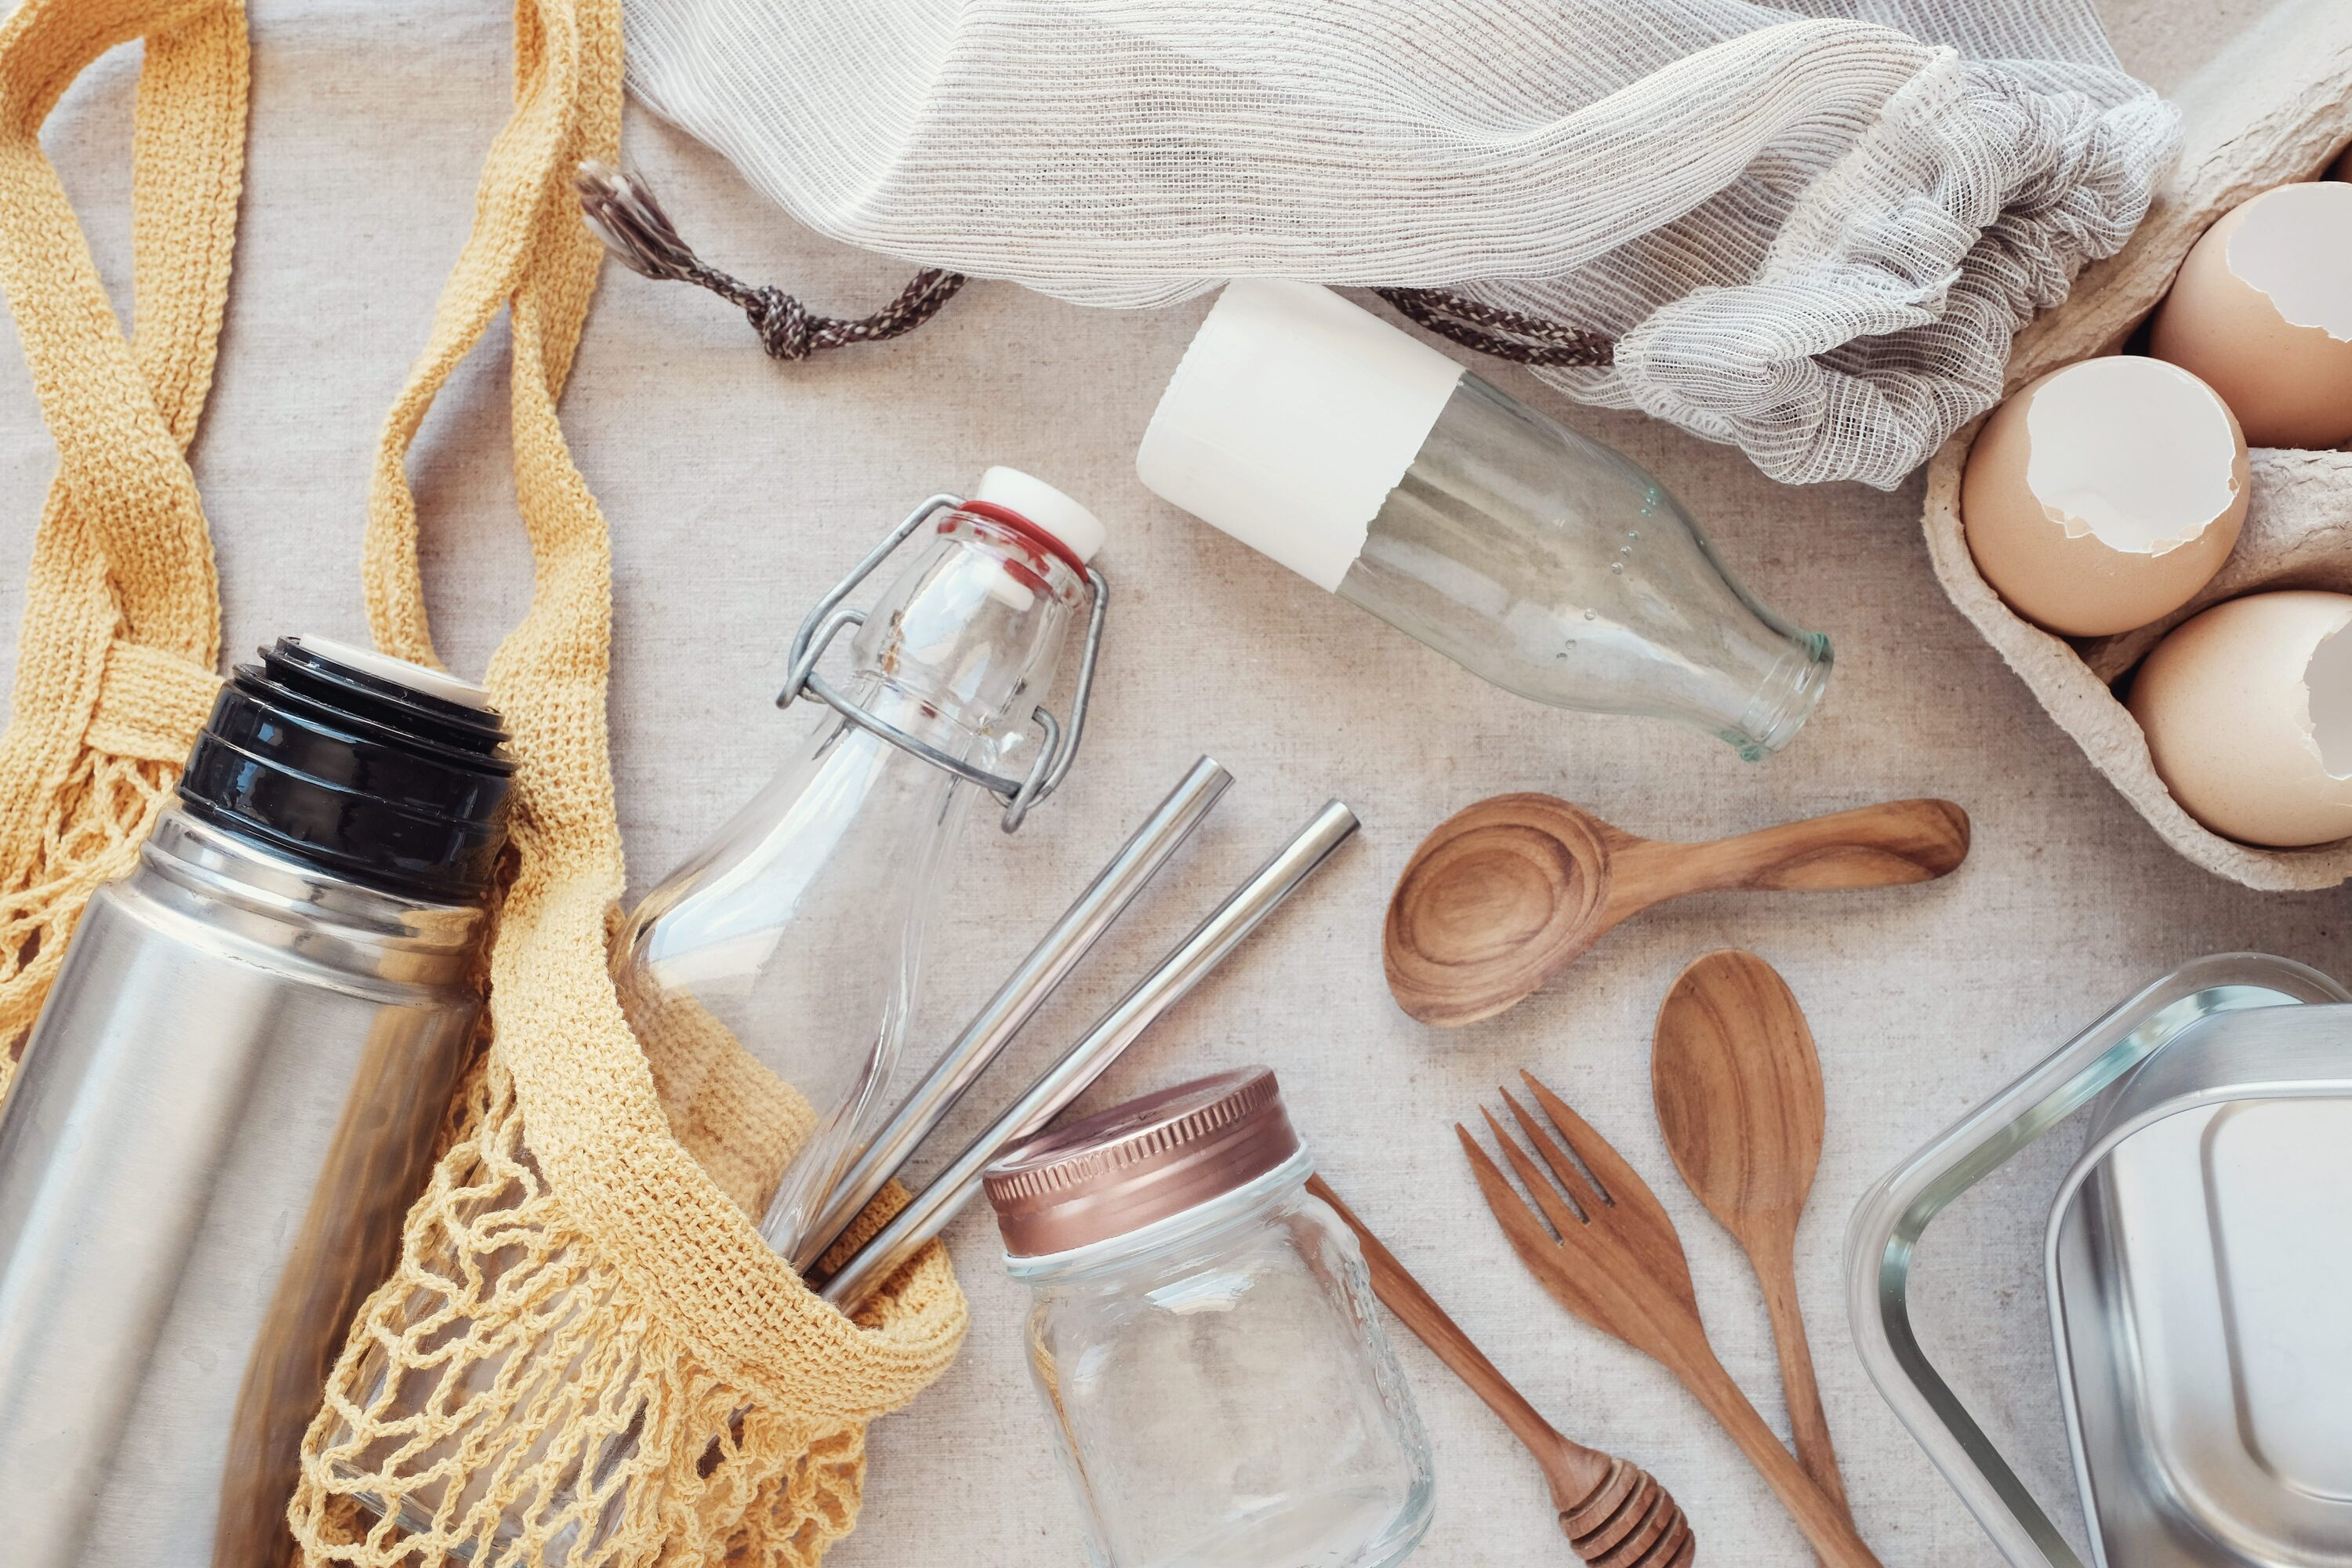 5 simple ways to reduce plastic usage  (and save money too)